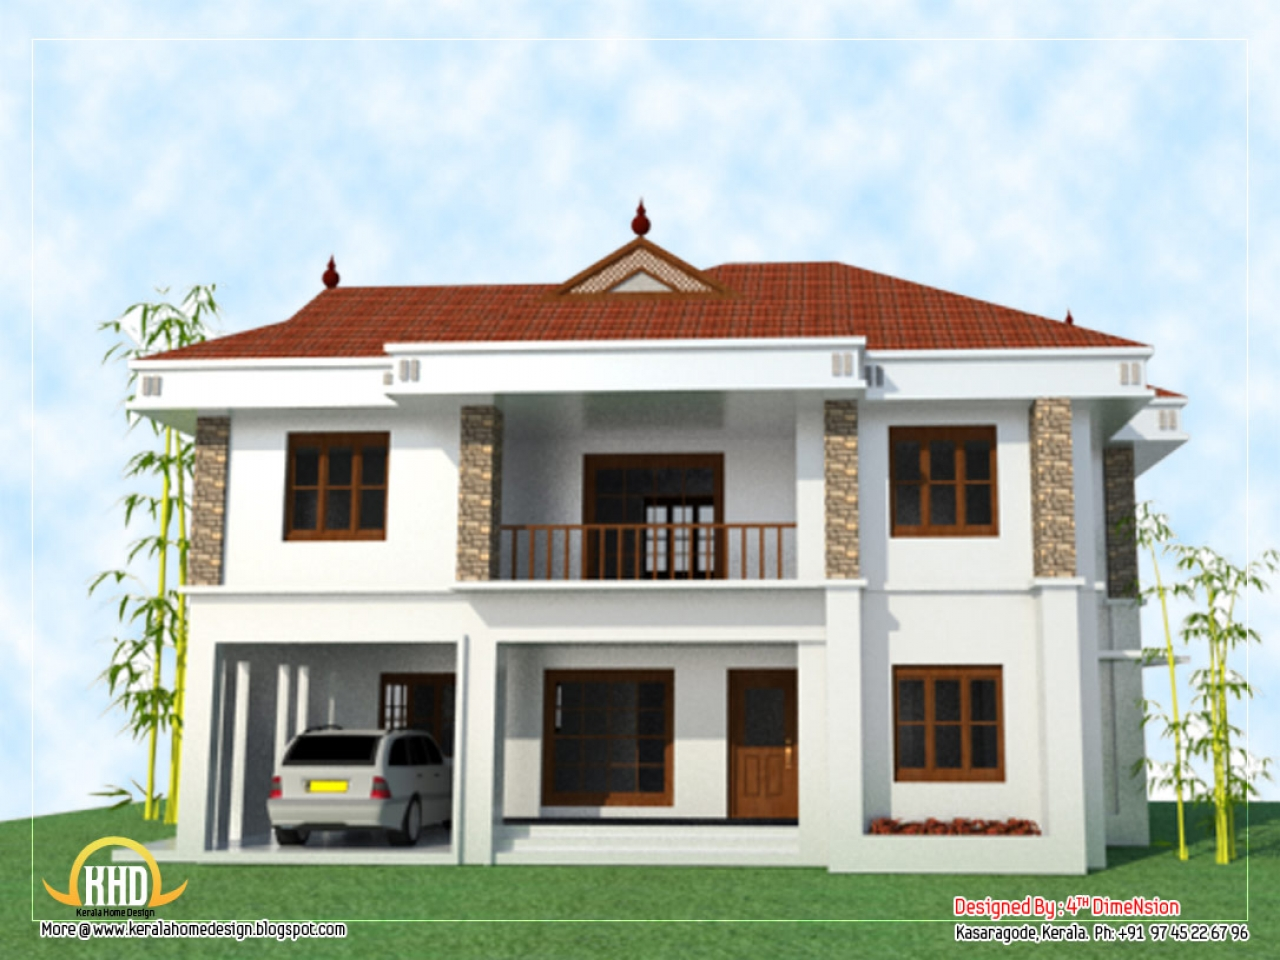 Two storey house designs philippines two storey house for One storey house philippines